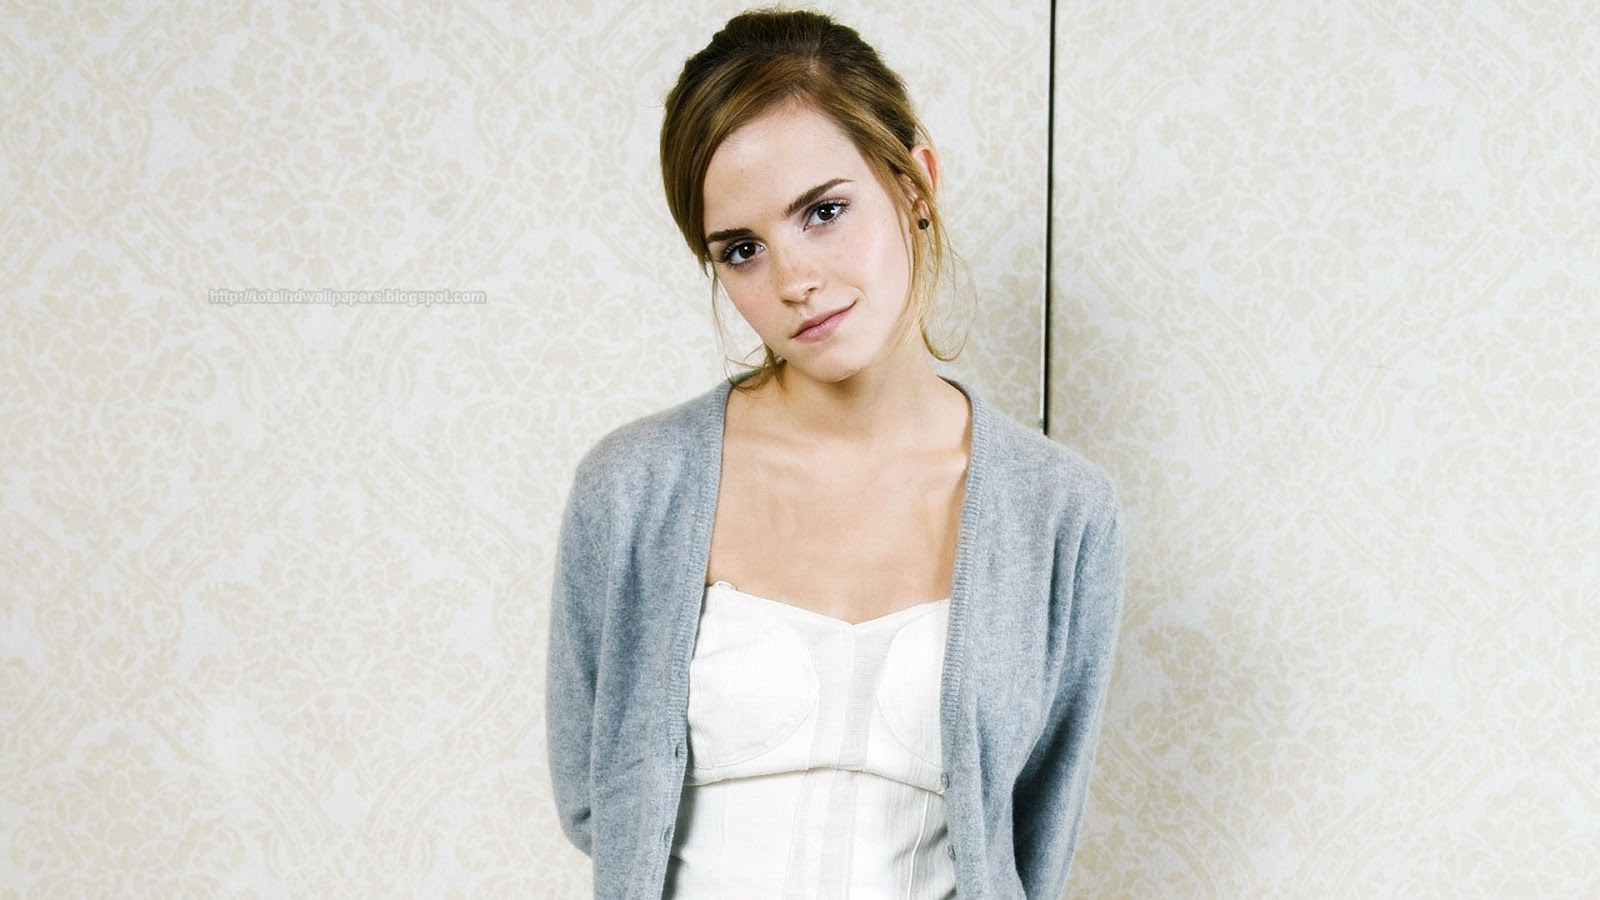 actresses hd wallpapers: emma watson hd wallpapers